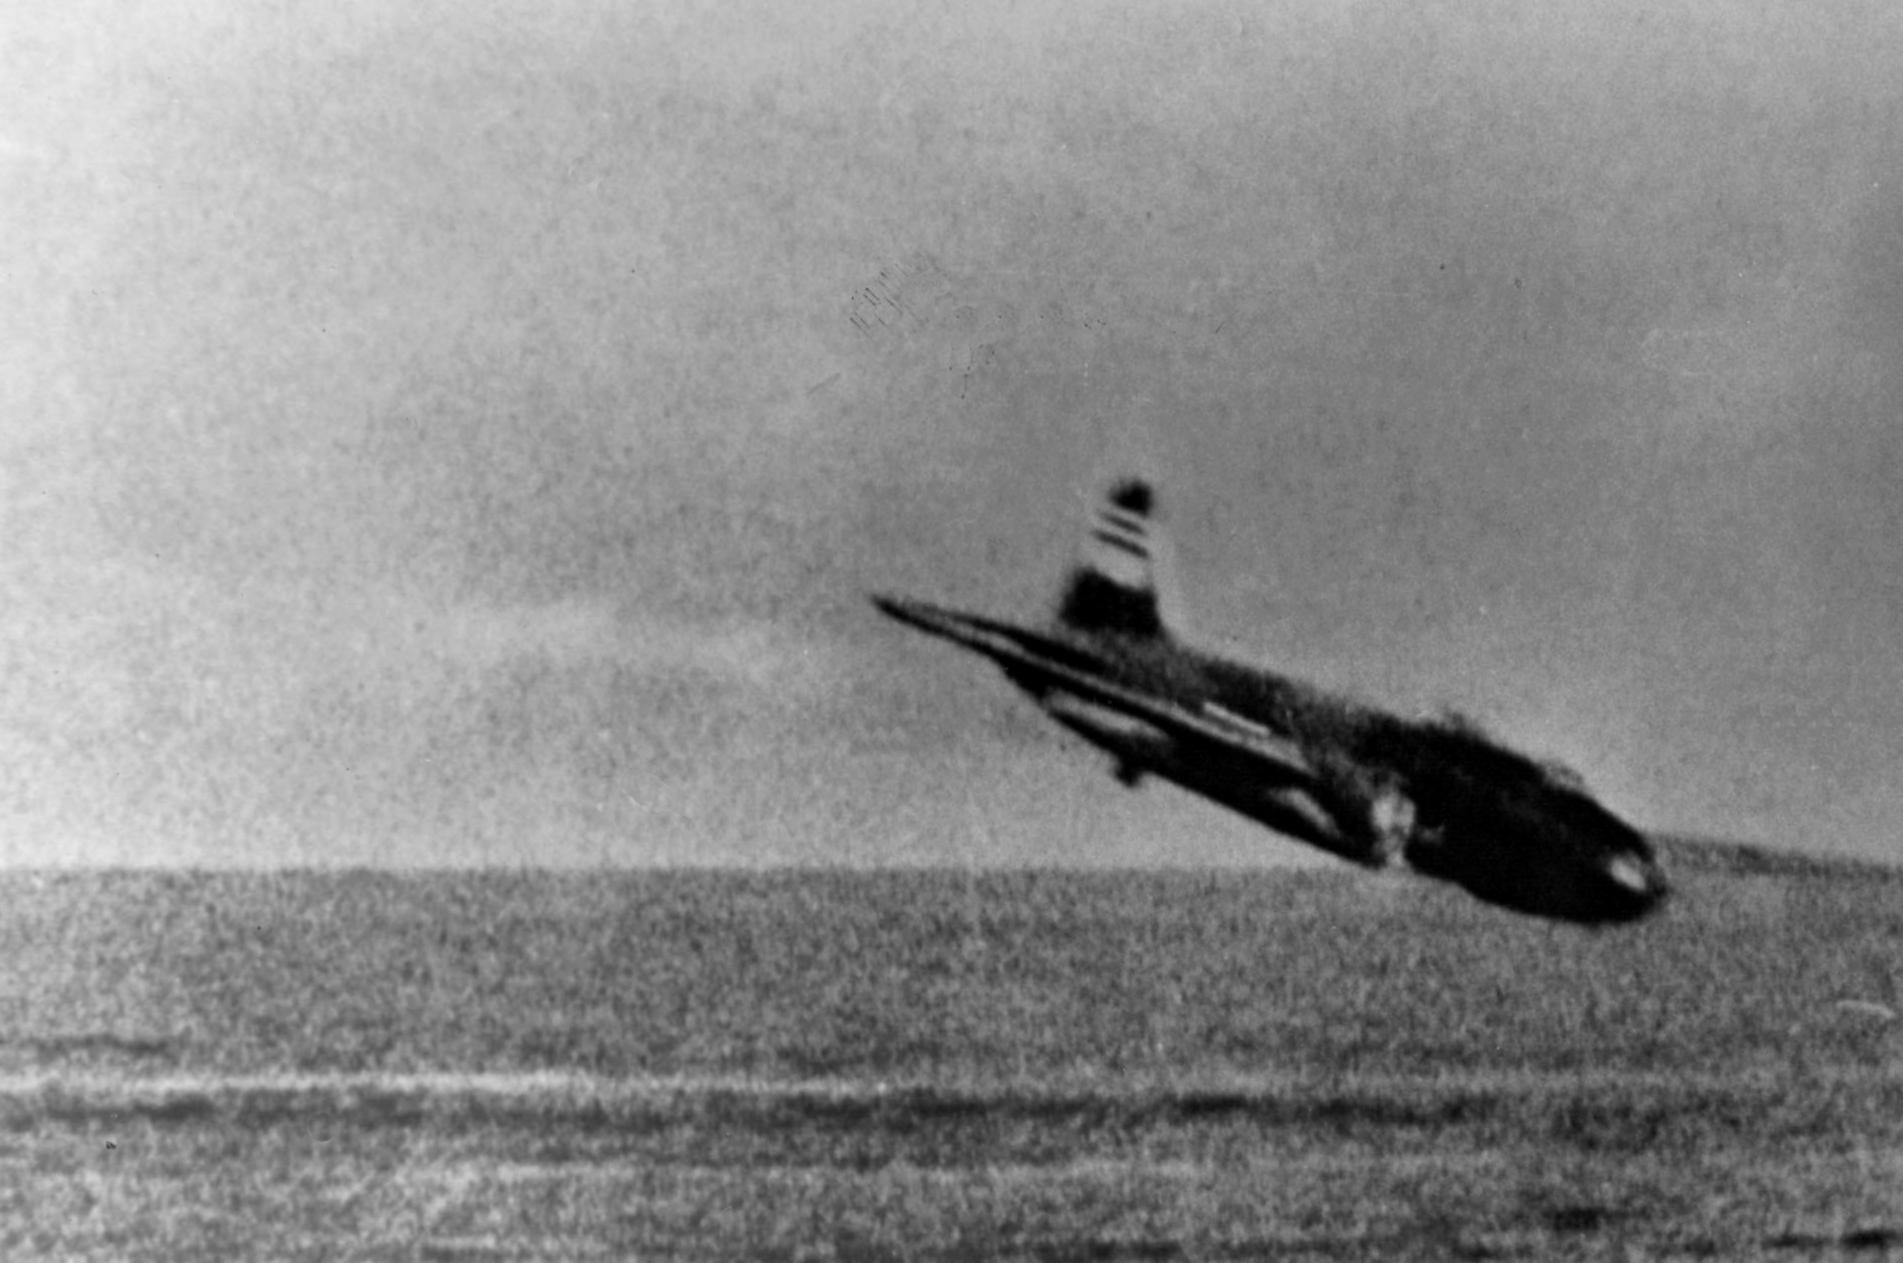 g4m betty File:G4M shot down near USS Lexington (CV-2) 1942.jpeg